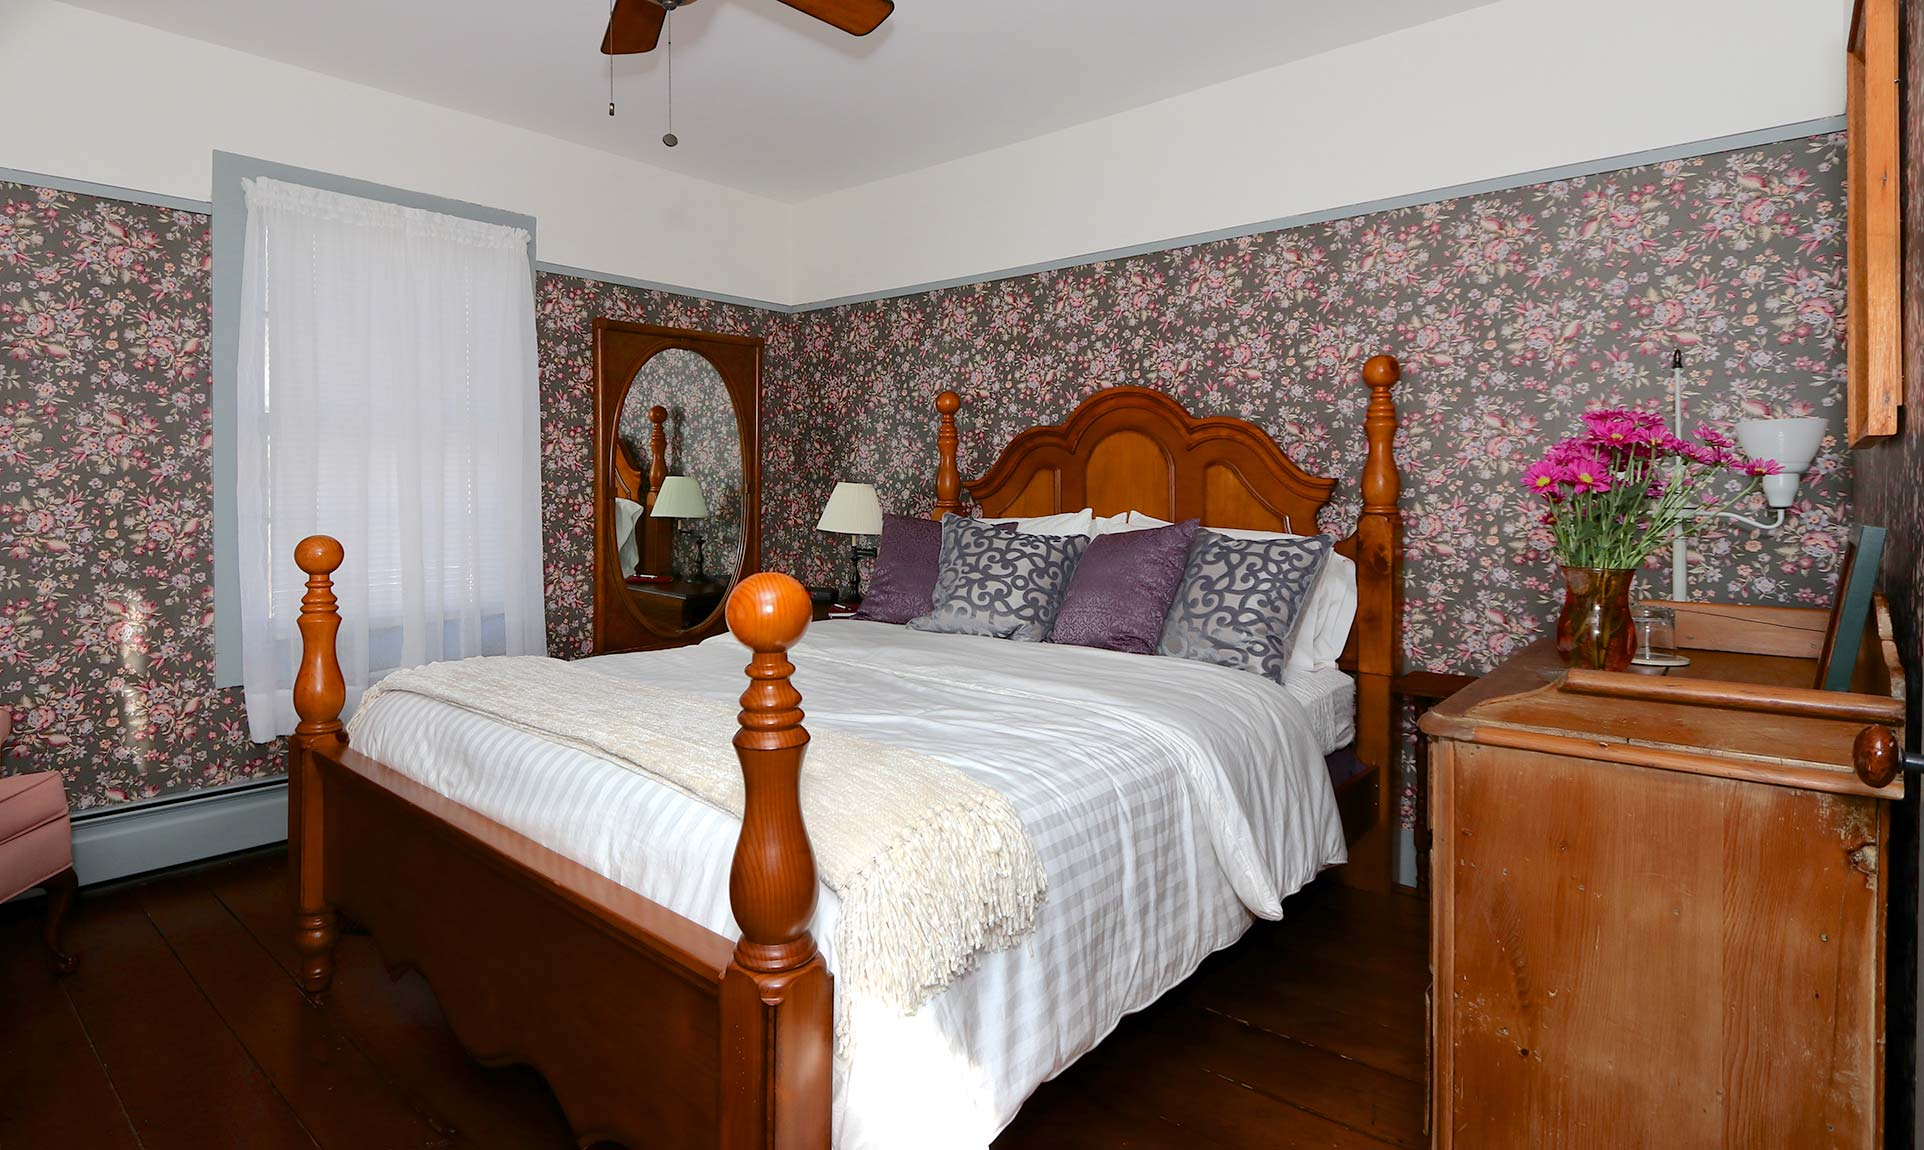 Queen bed in a room with a ceiling fan